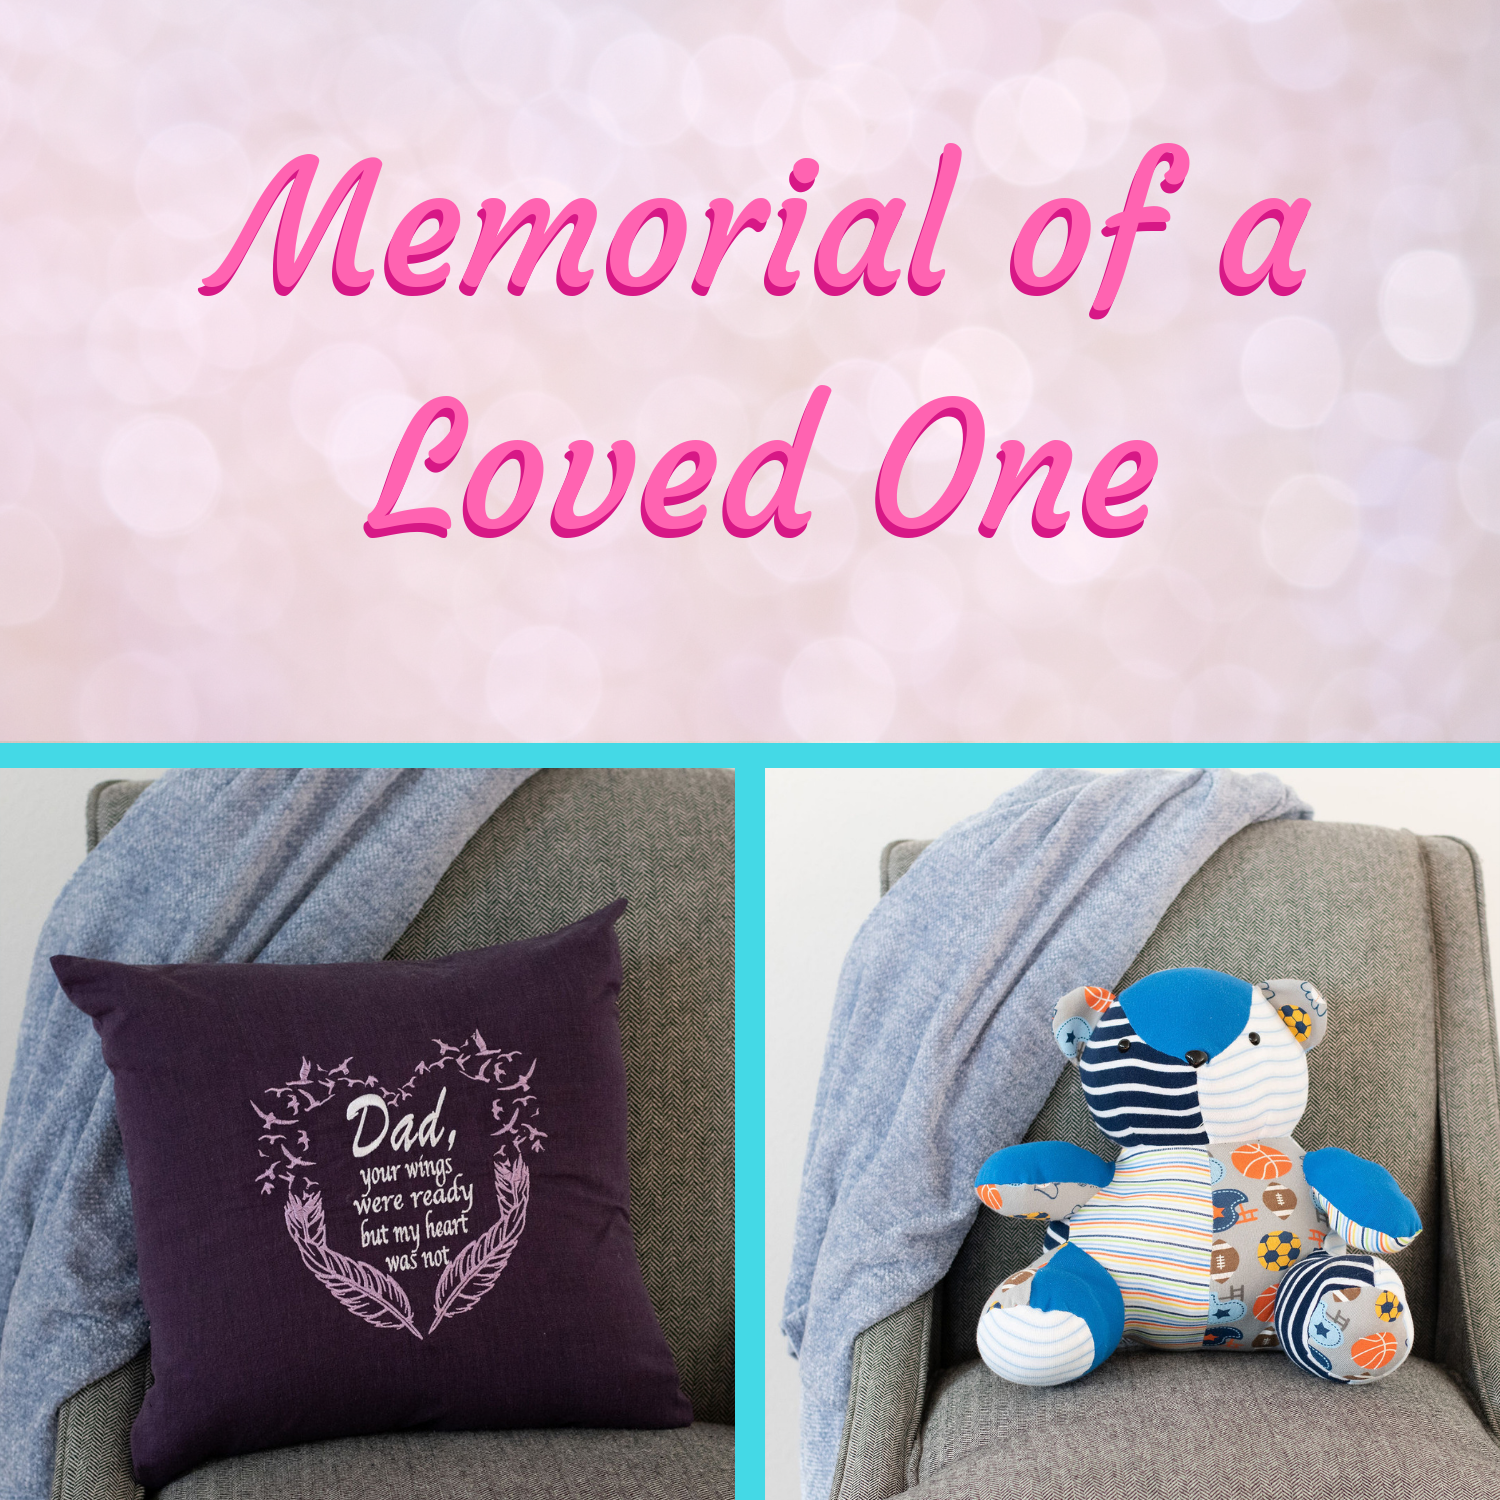 Memorial of a Loved One